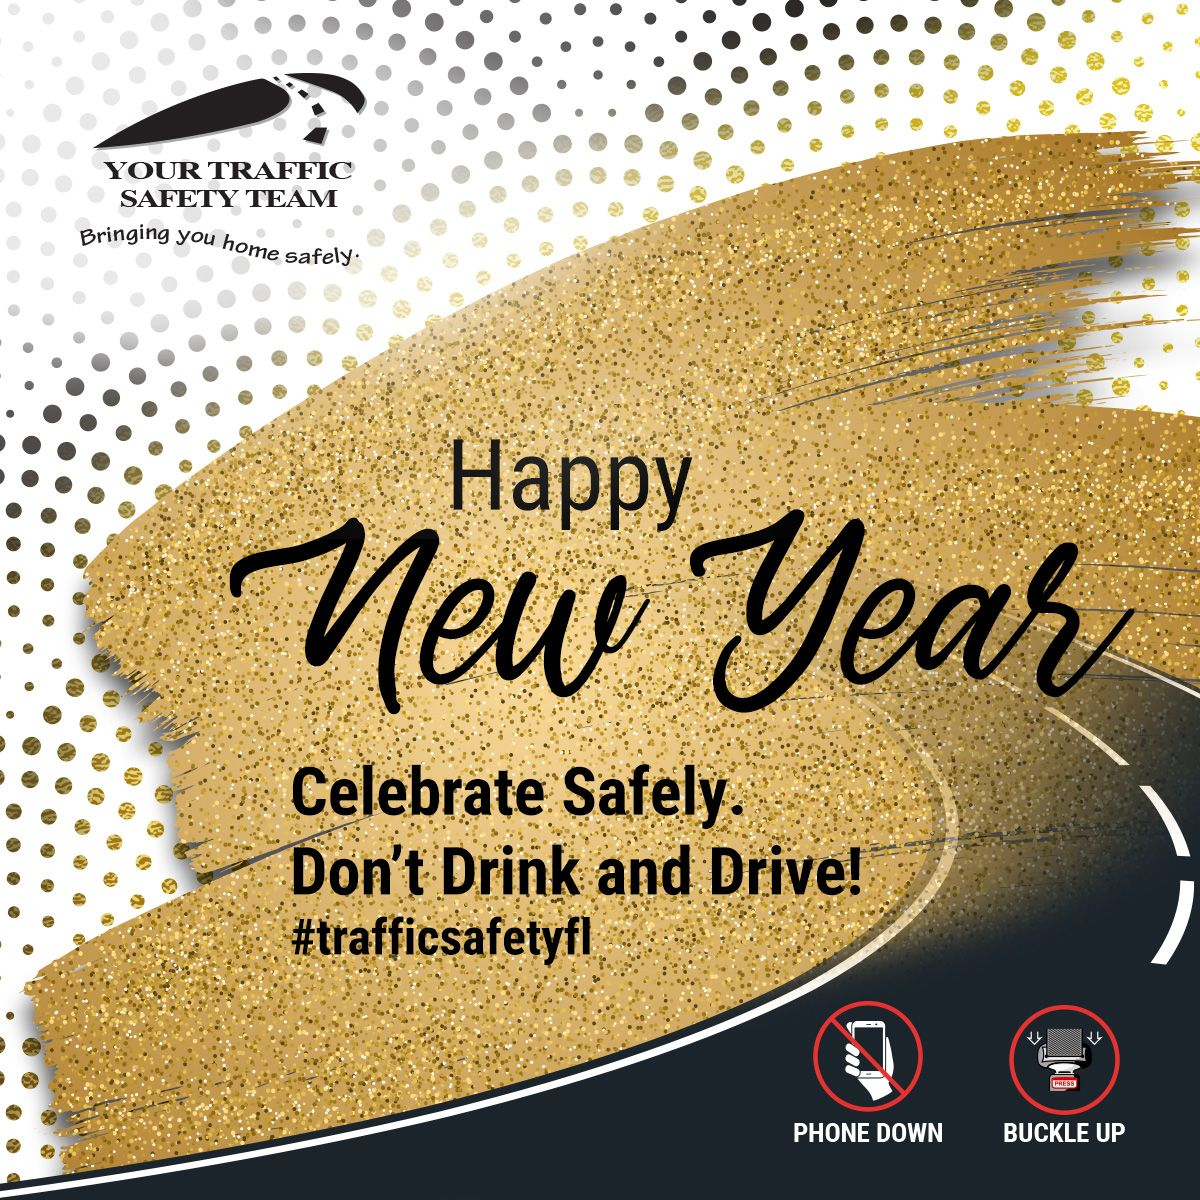 Happy new year from your community traffic safety team